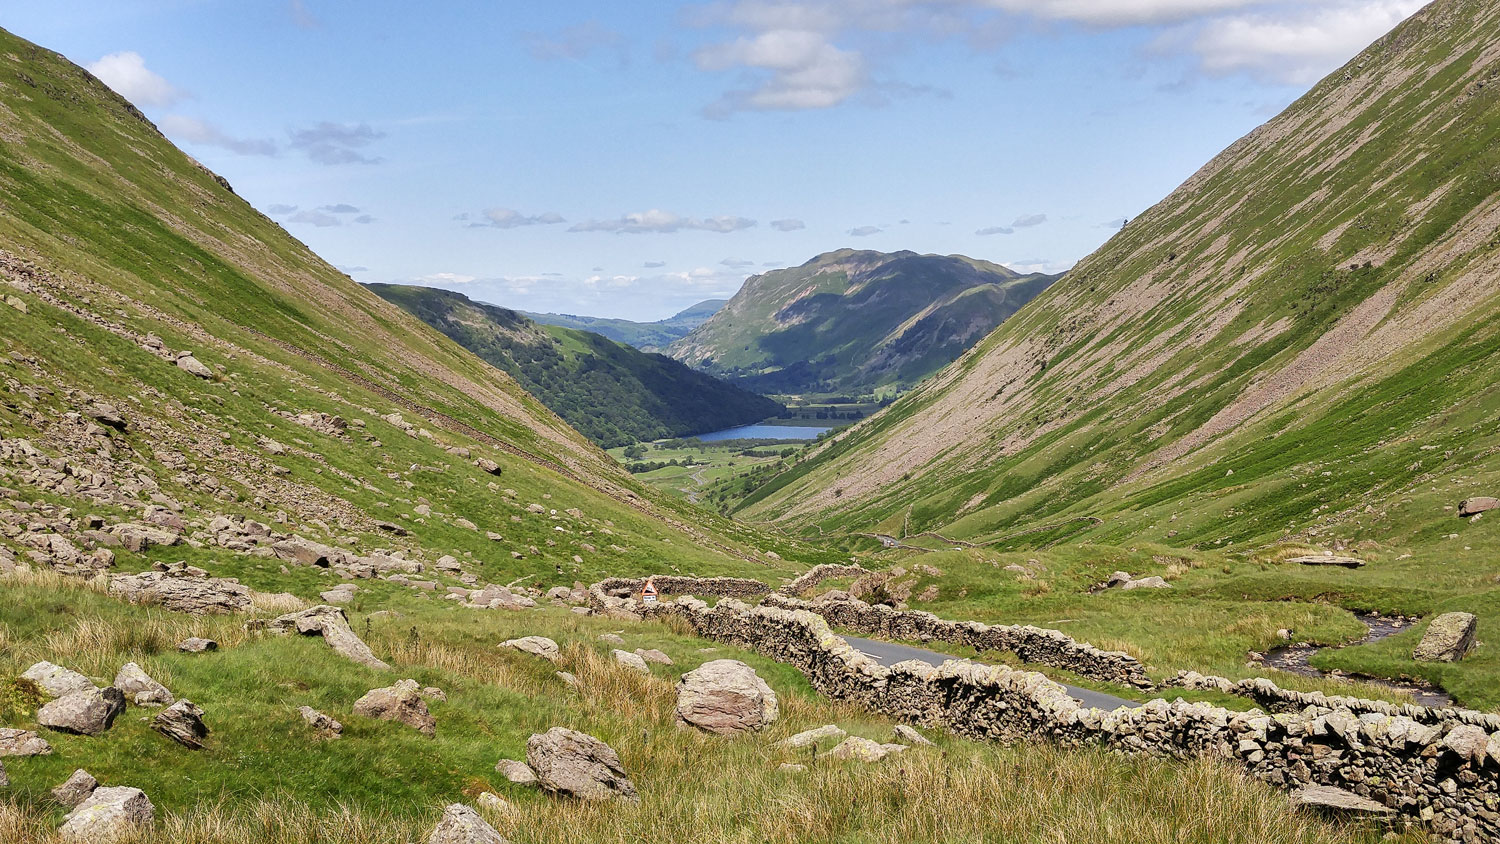 The Kirkstone Pass between Lake Windermere and Ullswater Lake